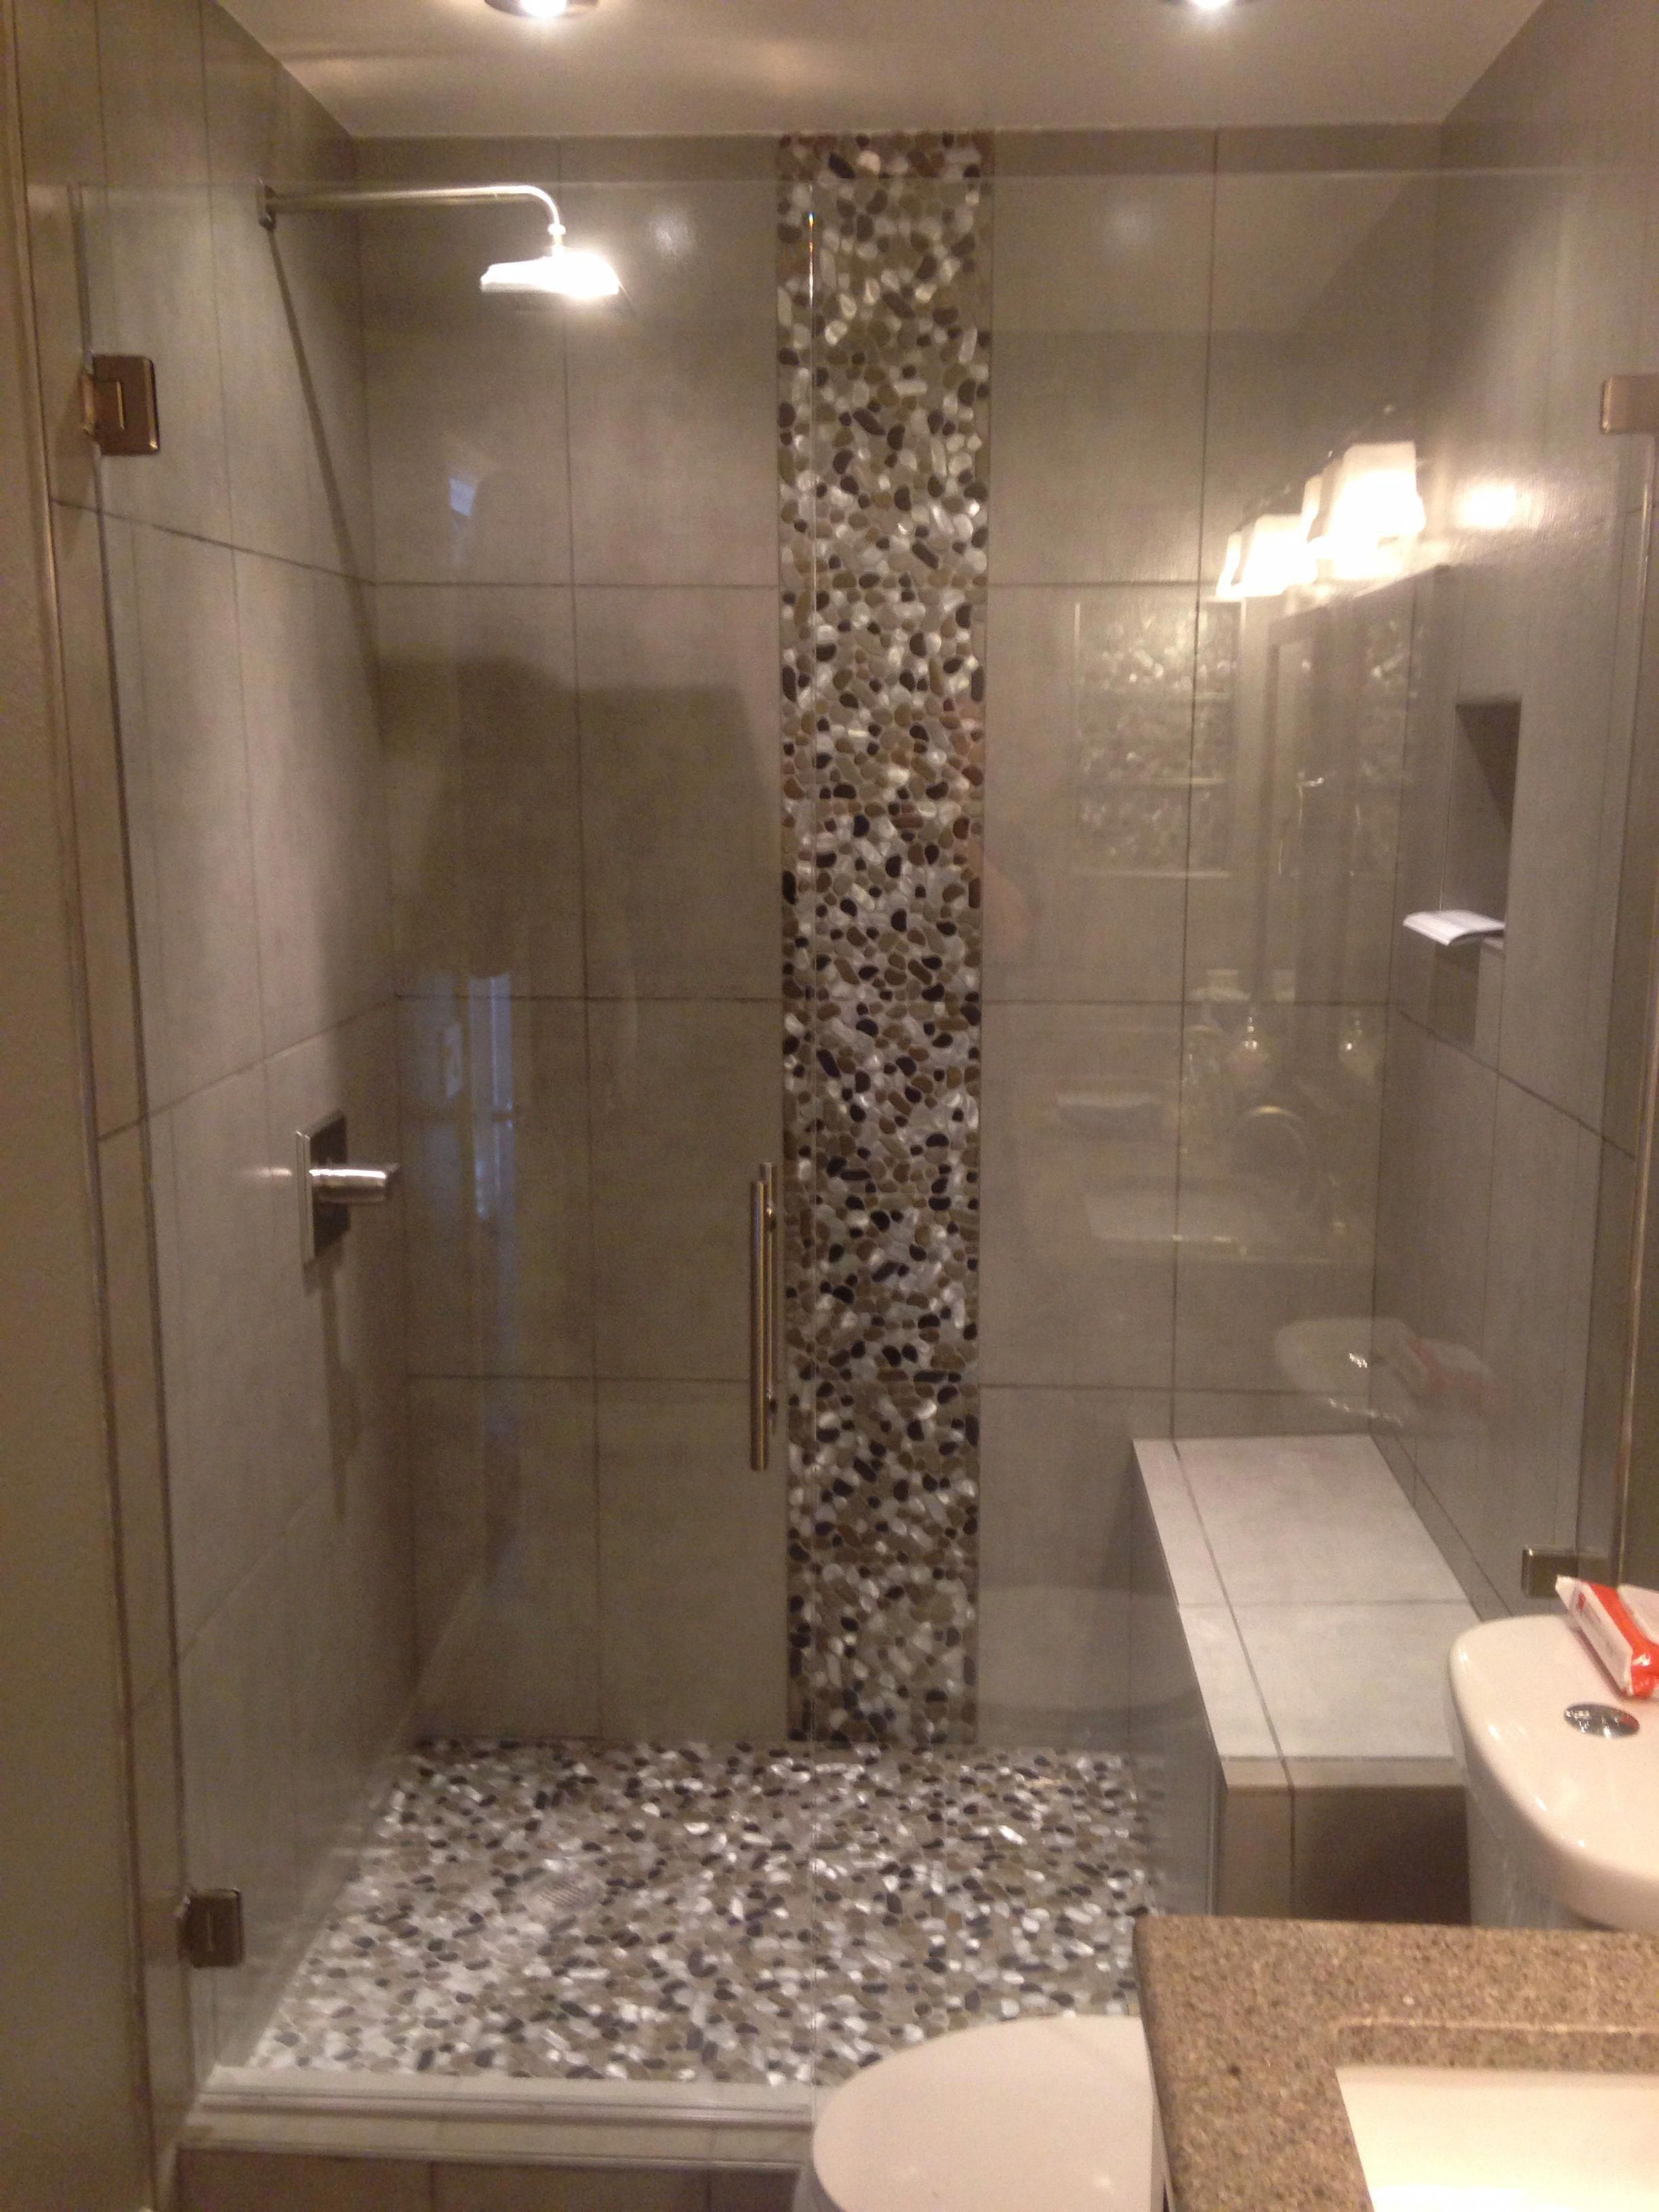 Completed Shower Door In Denver Colorado Banospequenos Banos